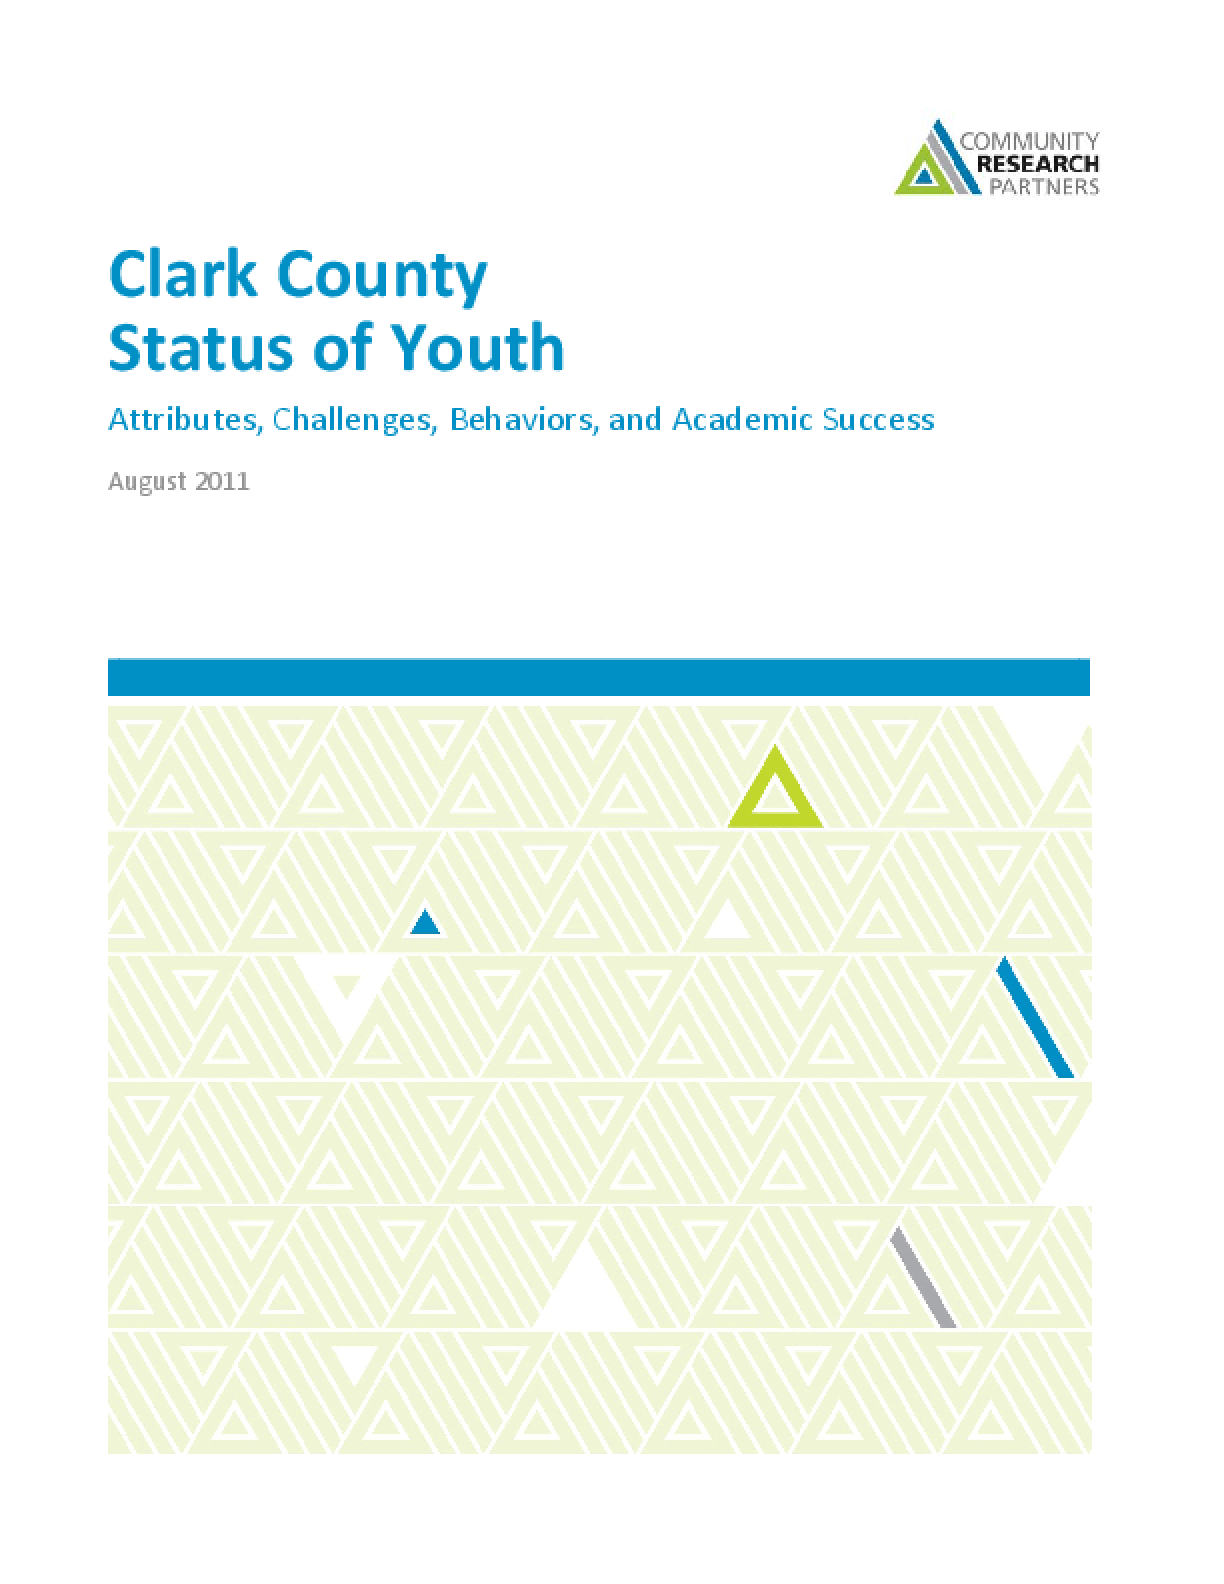 Clark County Status of Youth: Attributes, Challenges, Behaviors, and Academic Success